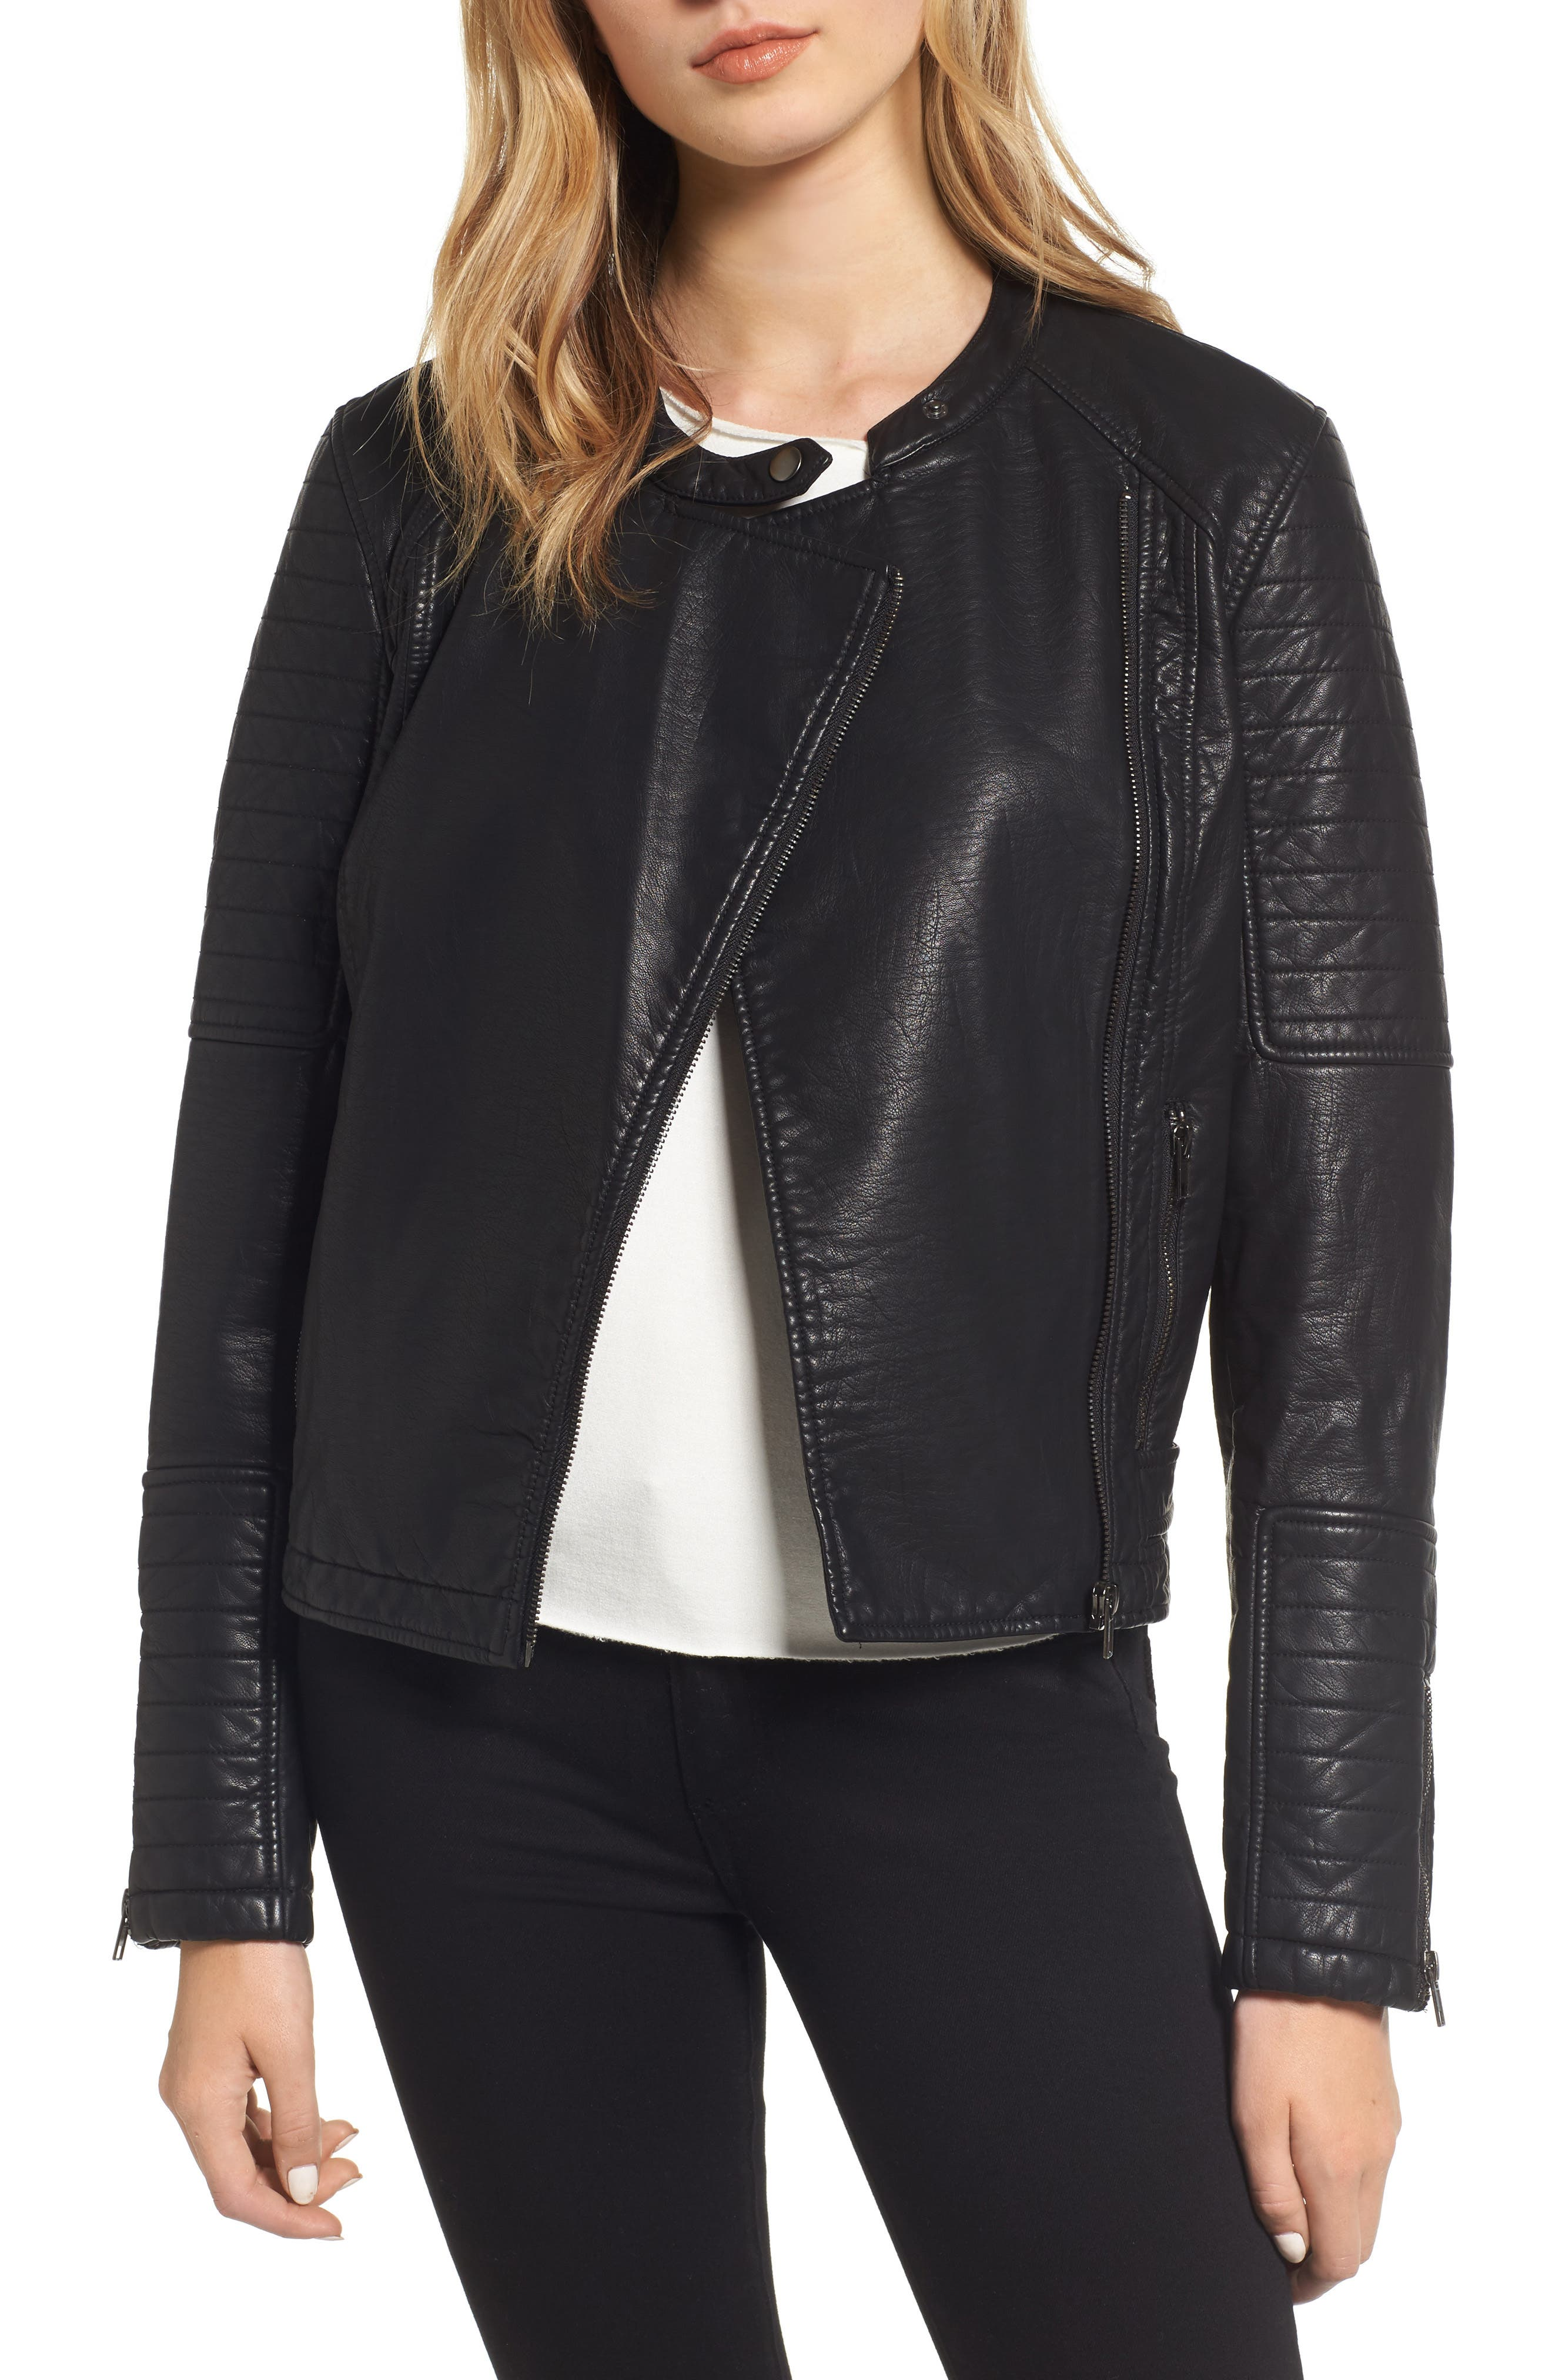 cupcakes and cashmere Ezmerelda Faux Leather Moto Jacket